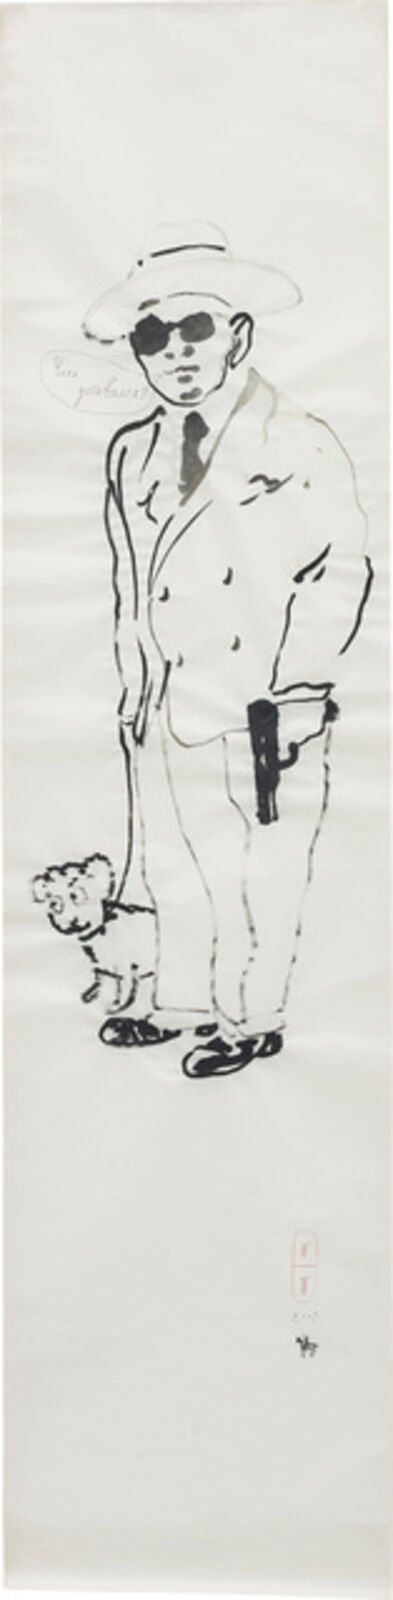 Pavel Pepperstein, 'Untitled', 2005